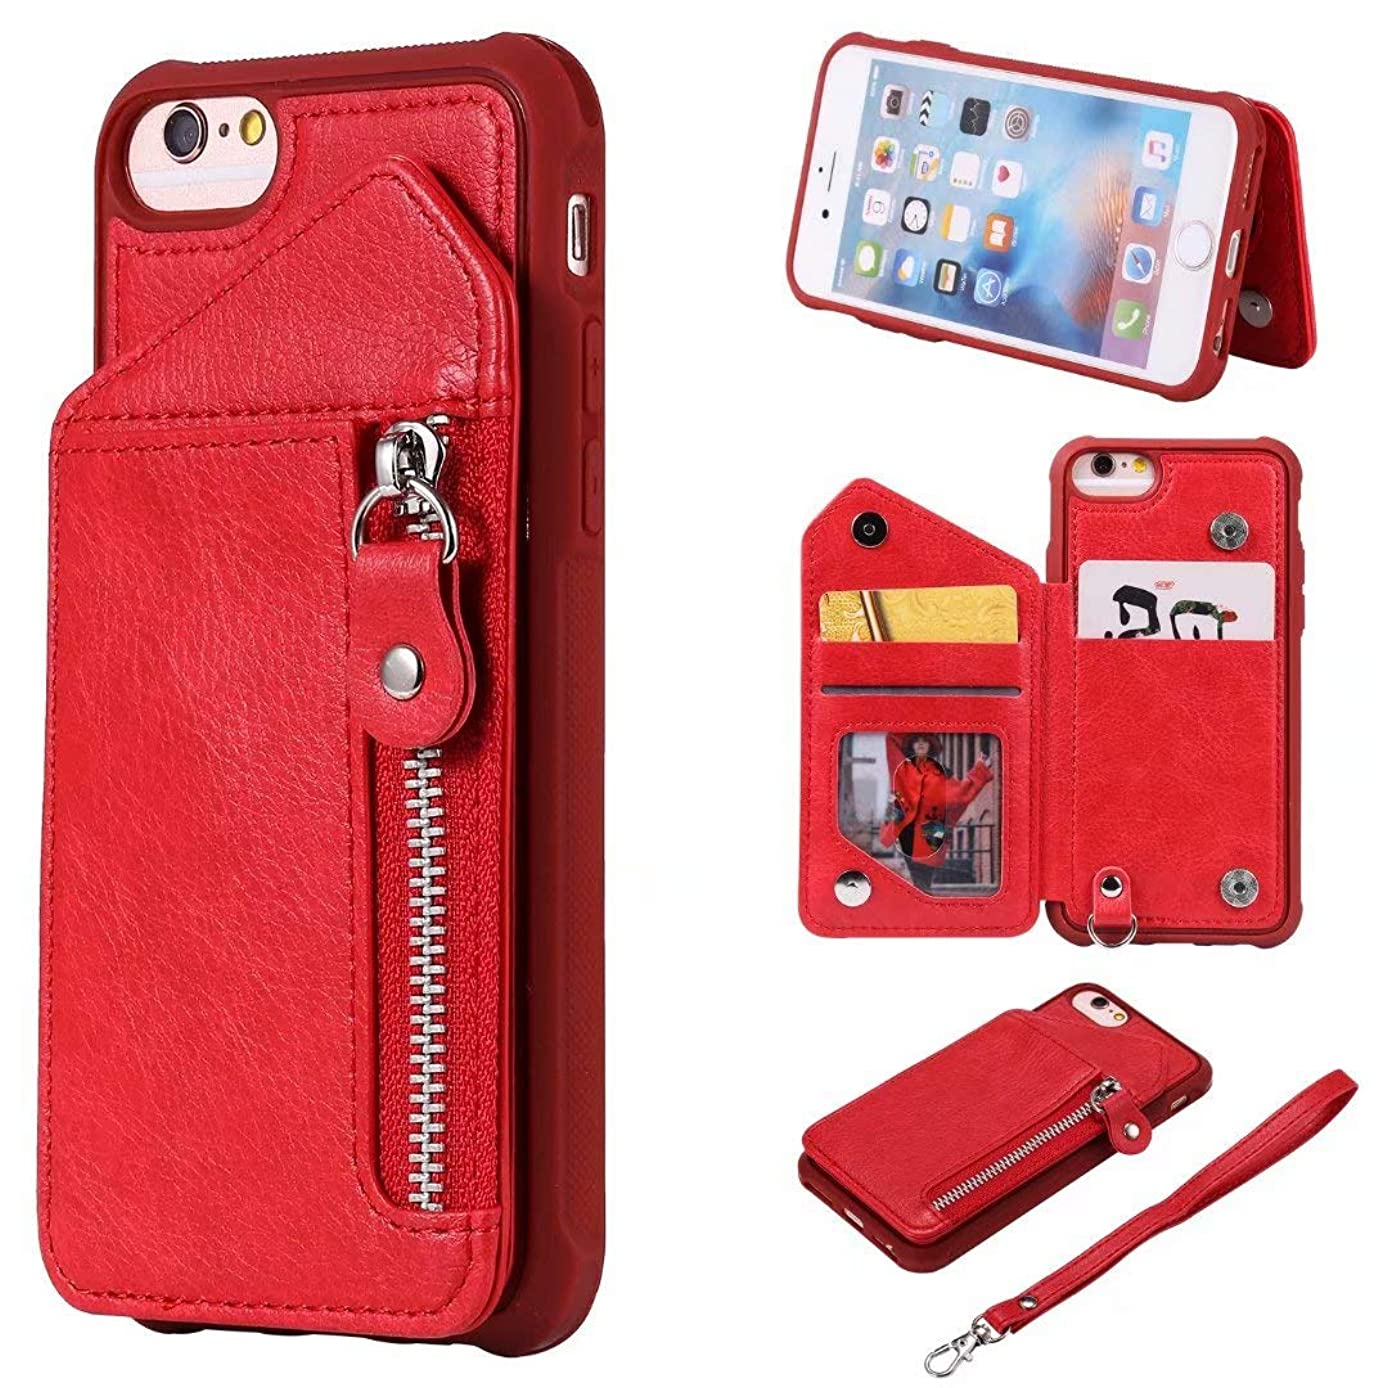 Ranyi iPhone 6S Case, iPhone 6 Case, Zipper Magnetic Wallet Back Cover [Card Slots] [Kickstand Feature] [Hand Strap] Shock Absorbing Leather Flip Folio Wallet Case for Apple iPhone 6S/6 (red)